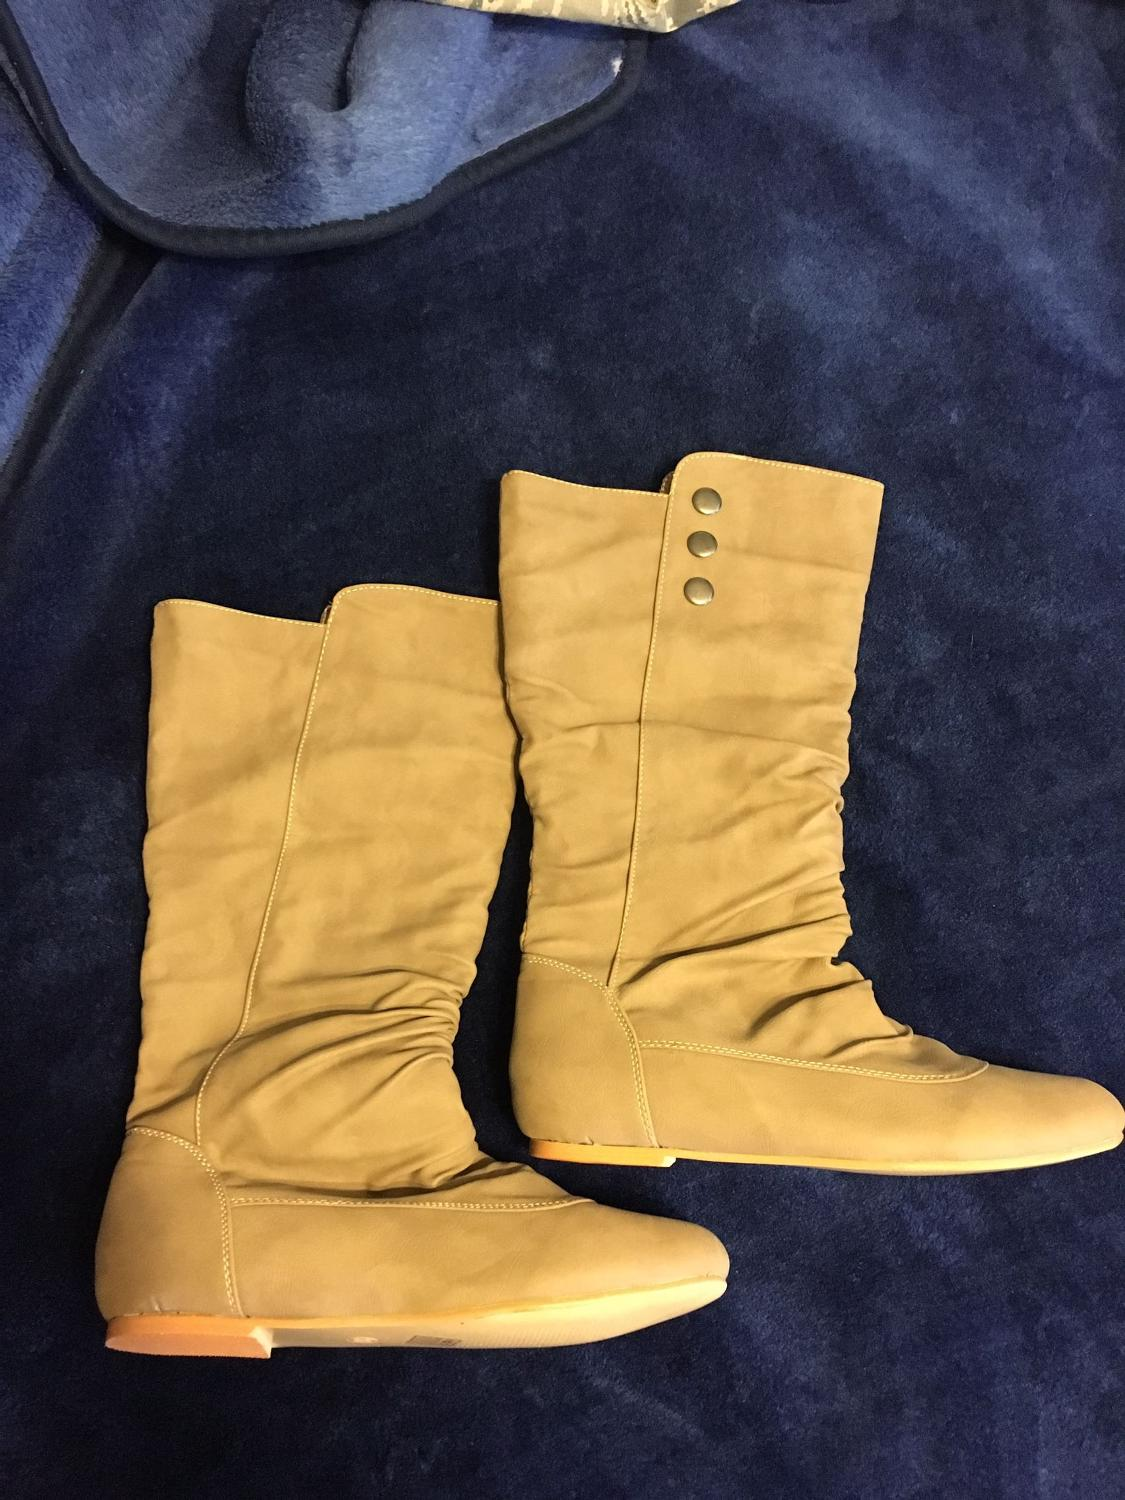 Best Tan Boots Size 6 For Sale In Minot North Dakota For 2017